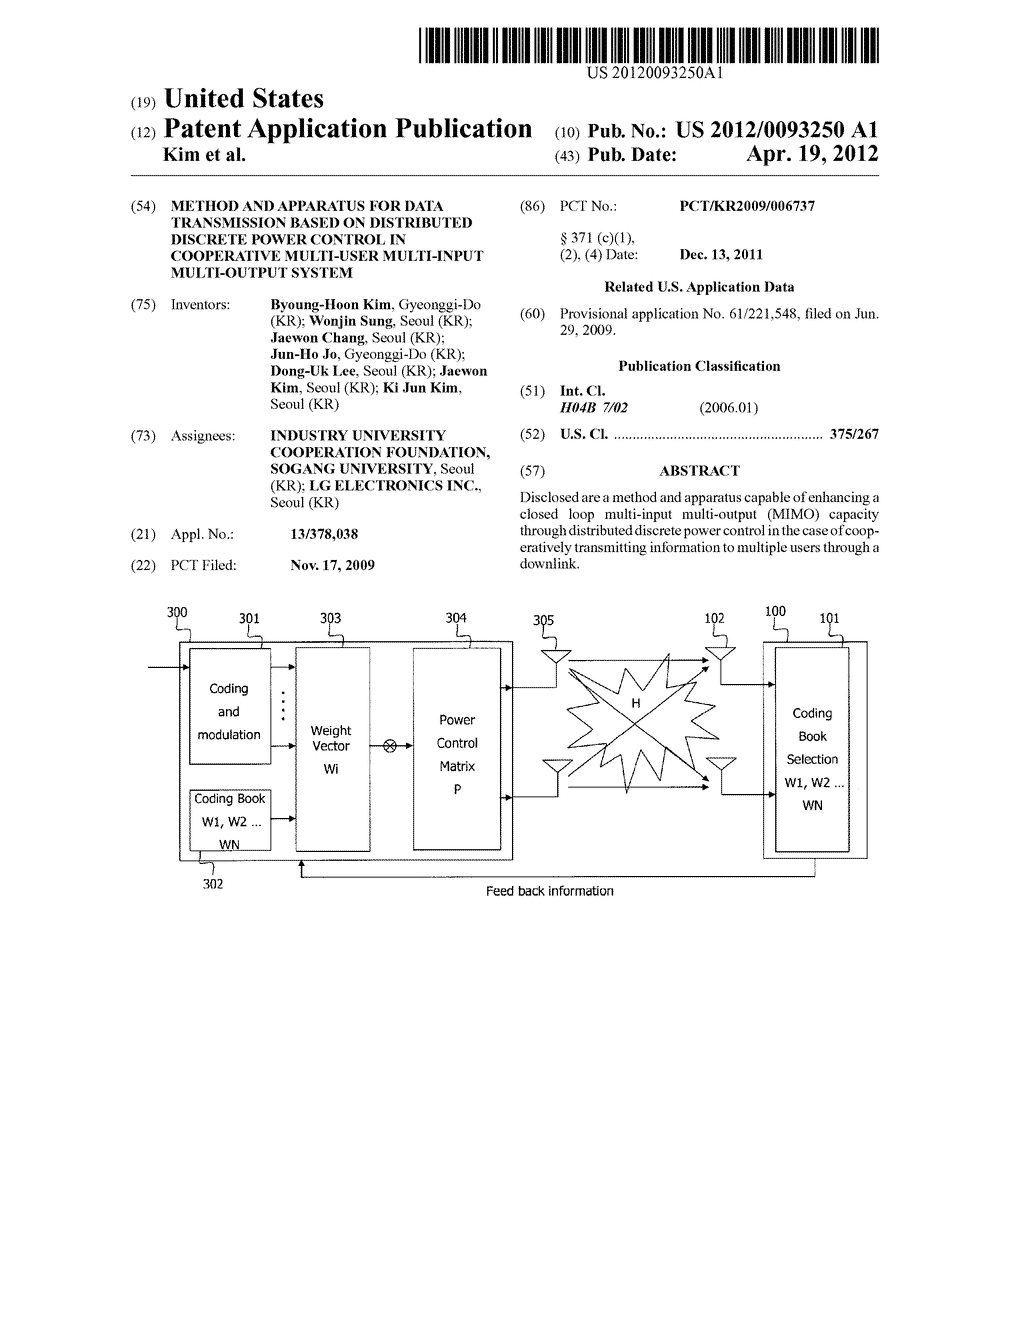 METHOD AND APPARATUS FOR DATA TRANSMISSION BASED ON DISTRIBUTED DISCRETE     POWER CONTROL IN COOPERATIVE MULTI-USER MULTI-INPUT MULTI-OUTPUT SYSTEM - diagram, schematic, and image 01